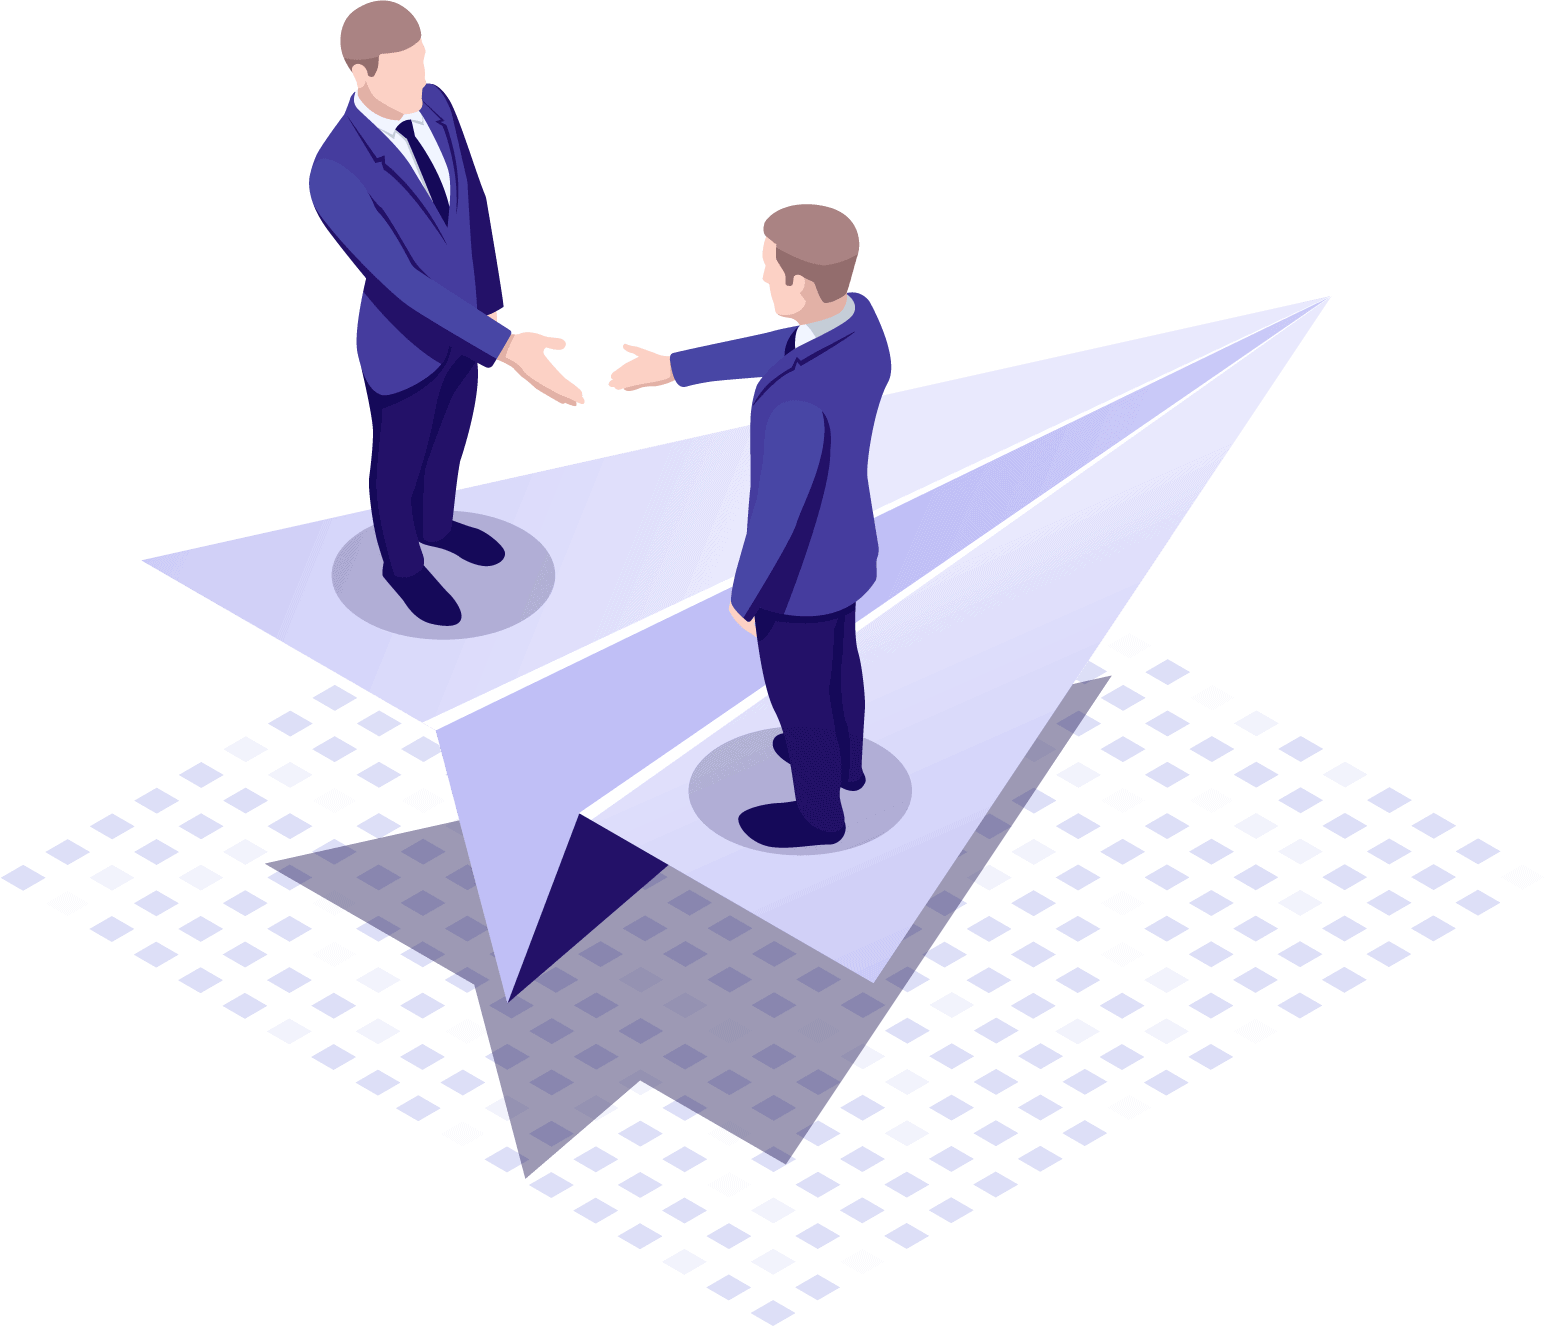 Project Management and Partnership